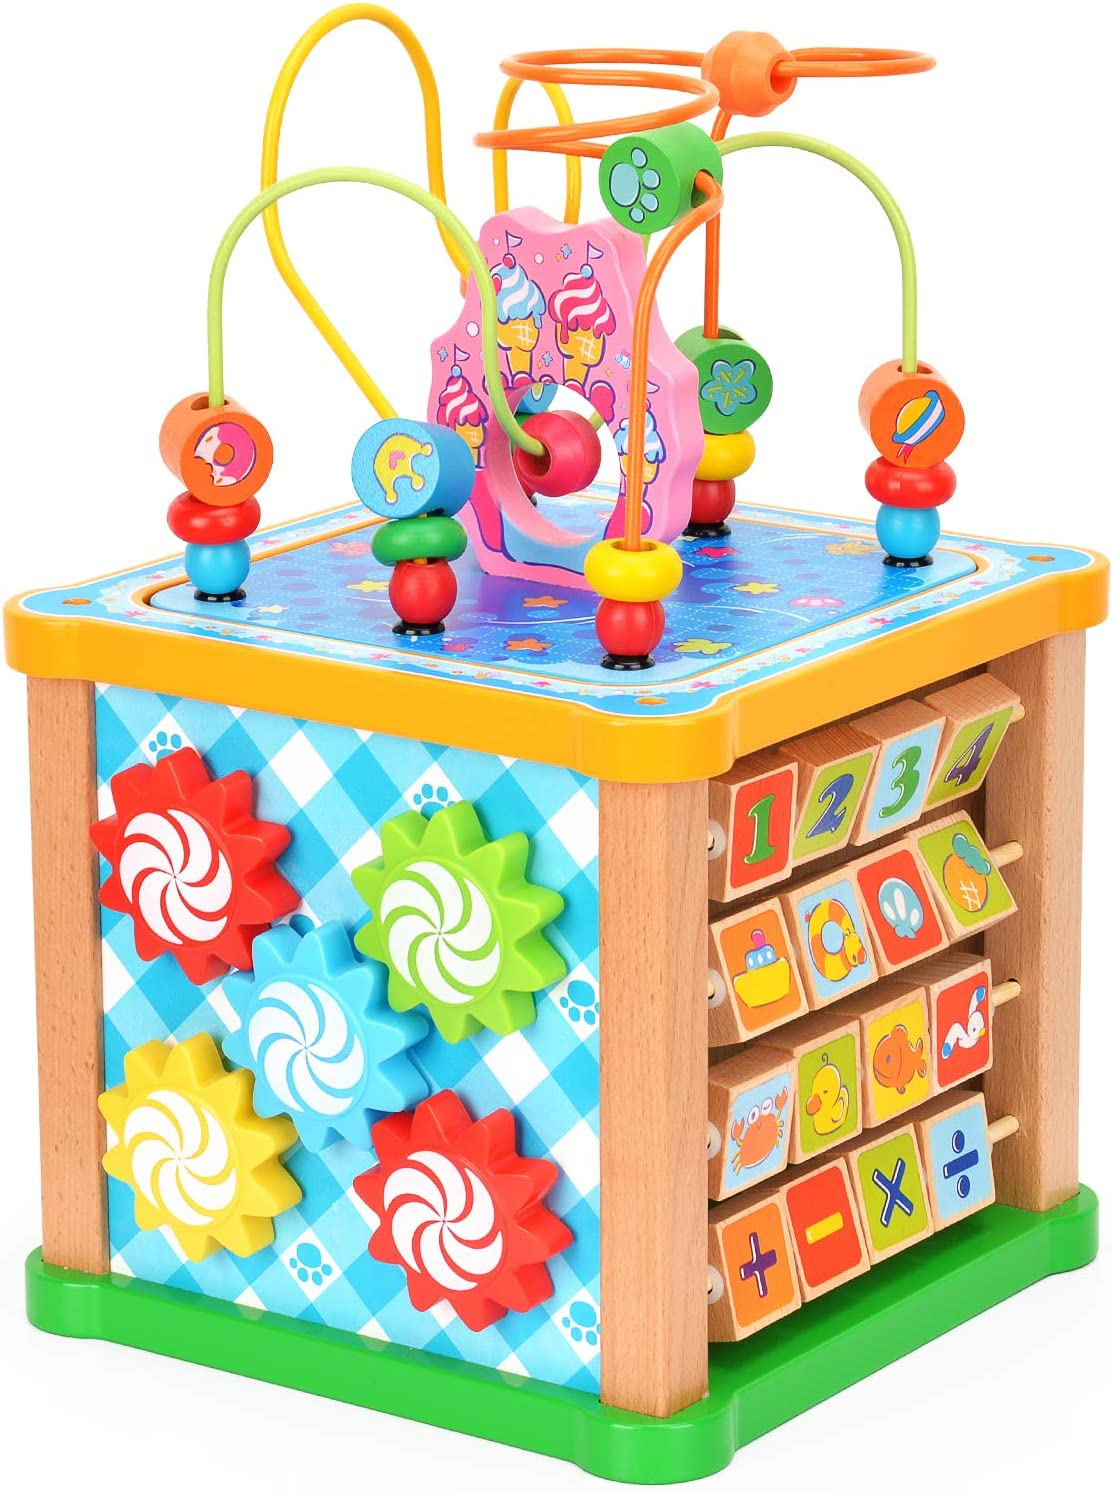 Victostar Activity Cube, 7 in 1 Bead Maze Multipurpose Educational Toy Wood Shape Color Sorter for Kids